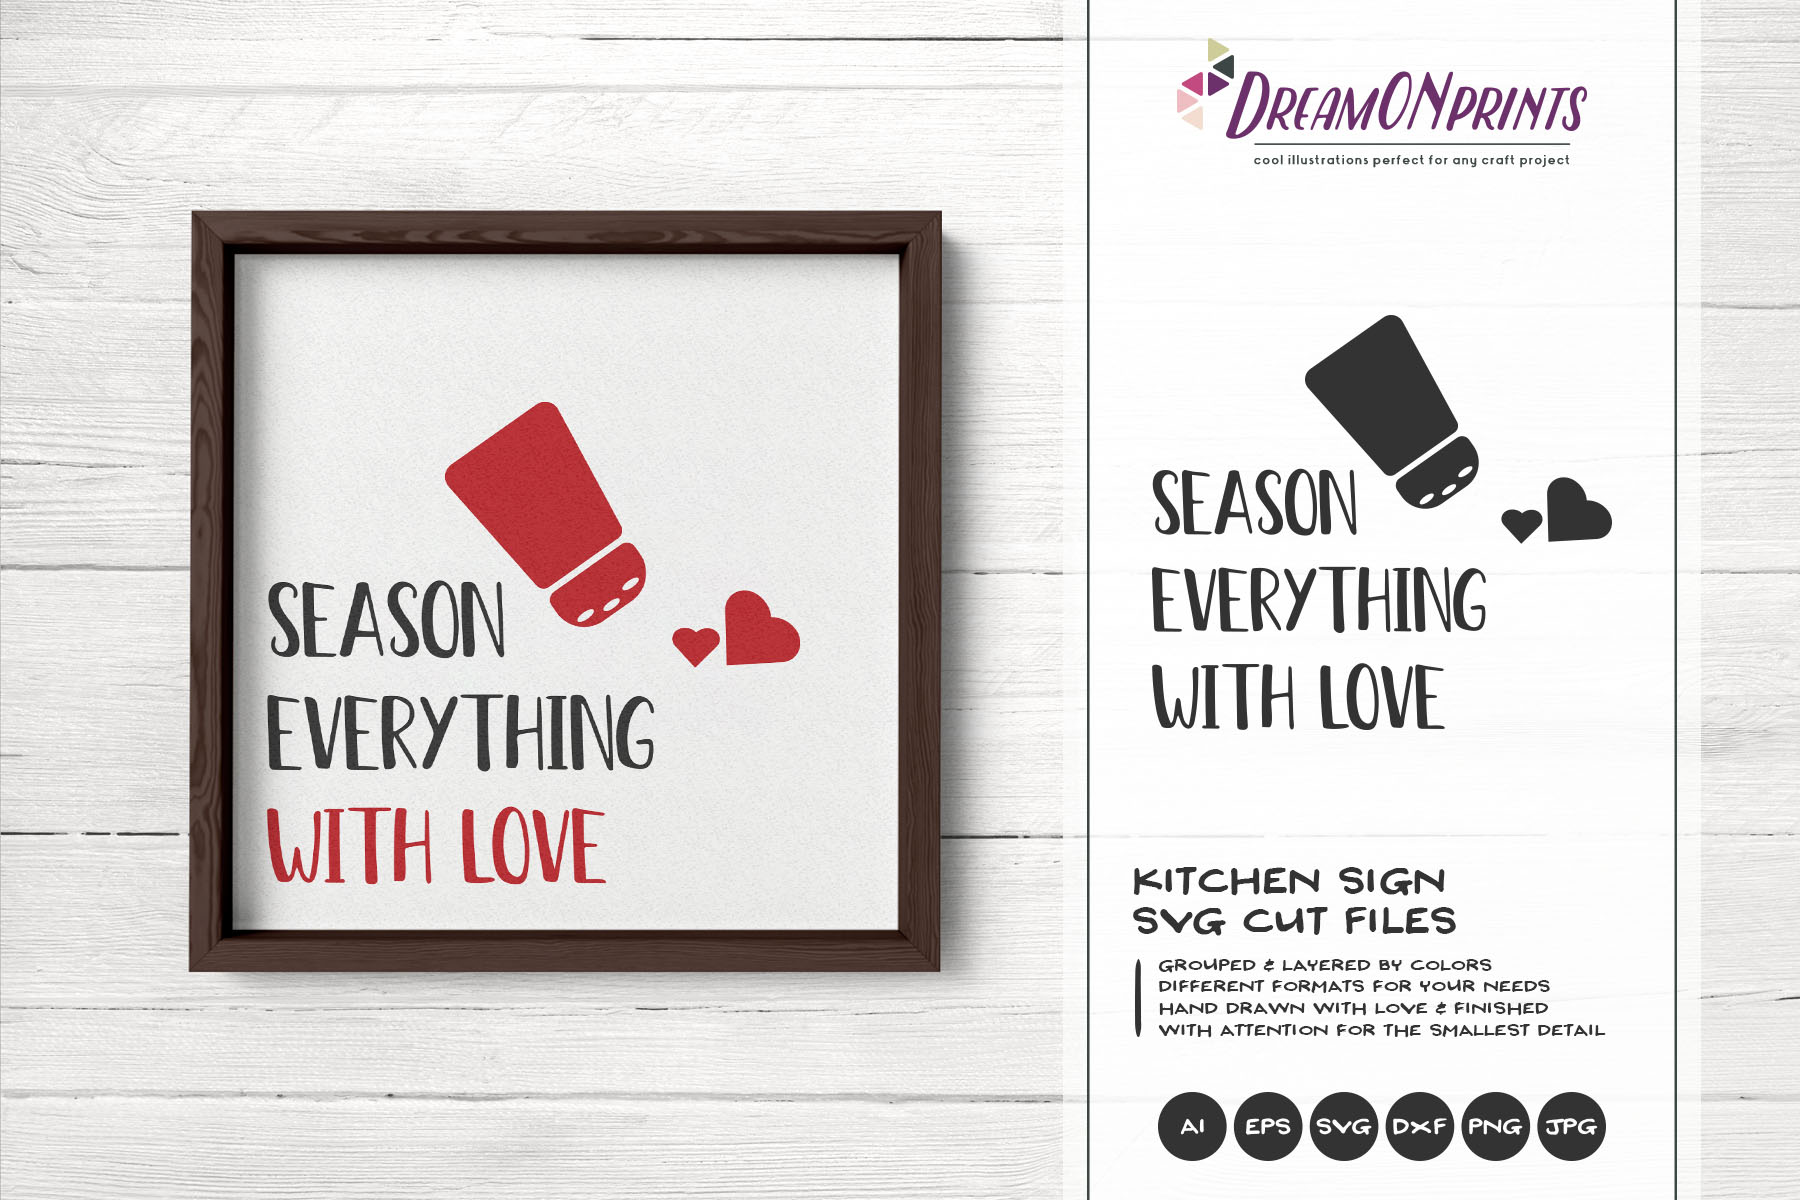 Kitchen SVG Season Everything with Love example image 1